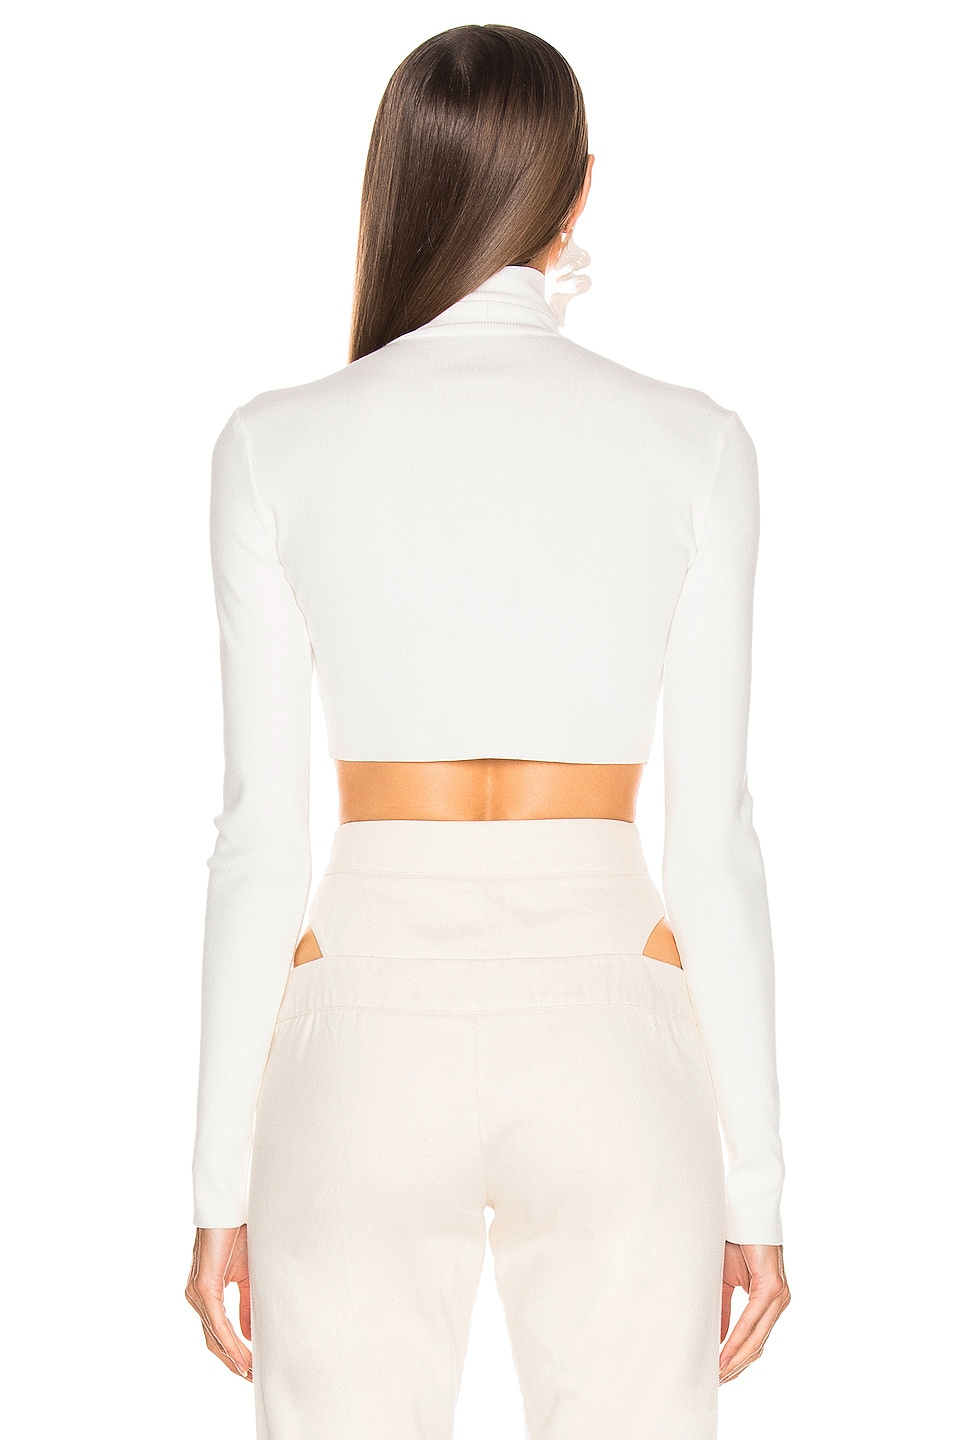 Image 3 of Zeynep Arcay Turtleneck Cropped Knit Top in White